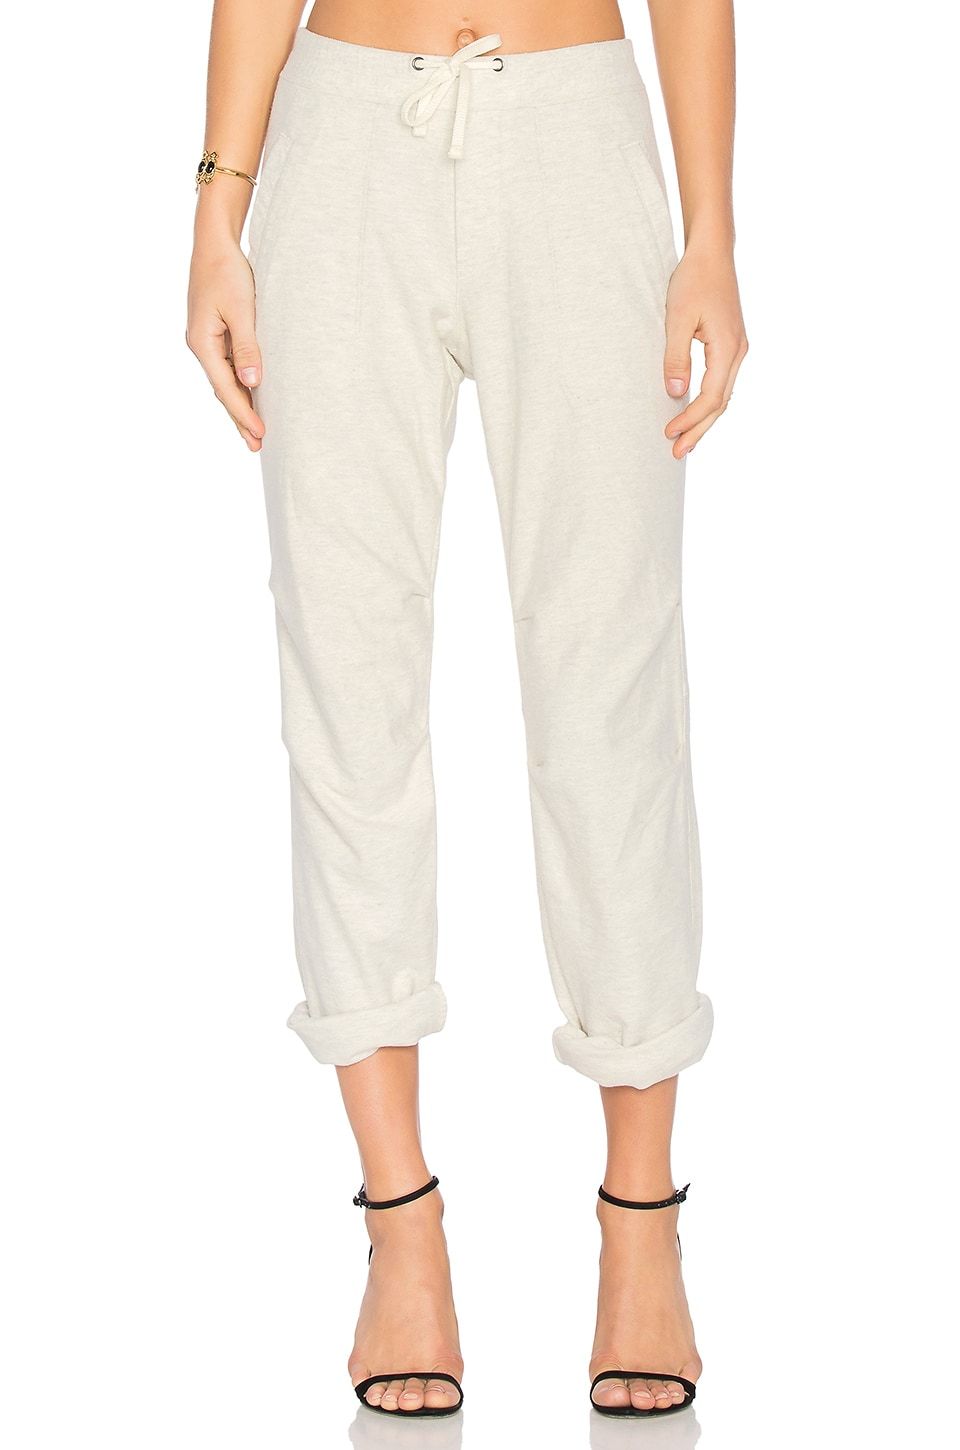 Heathered Knit Twill Pant by James Perse